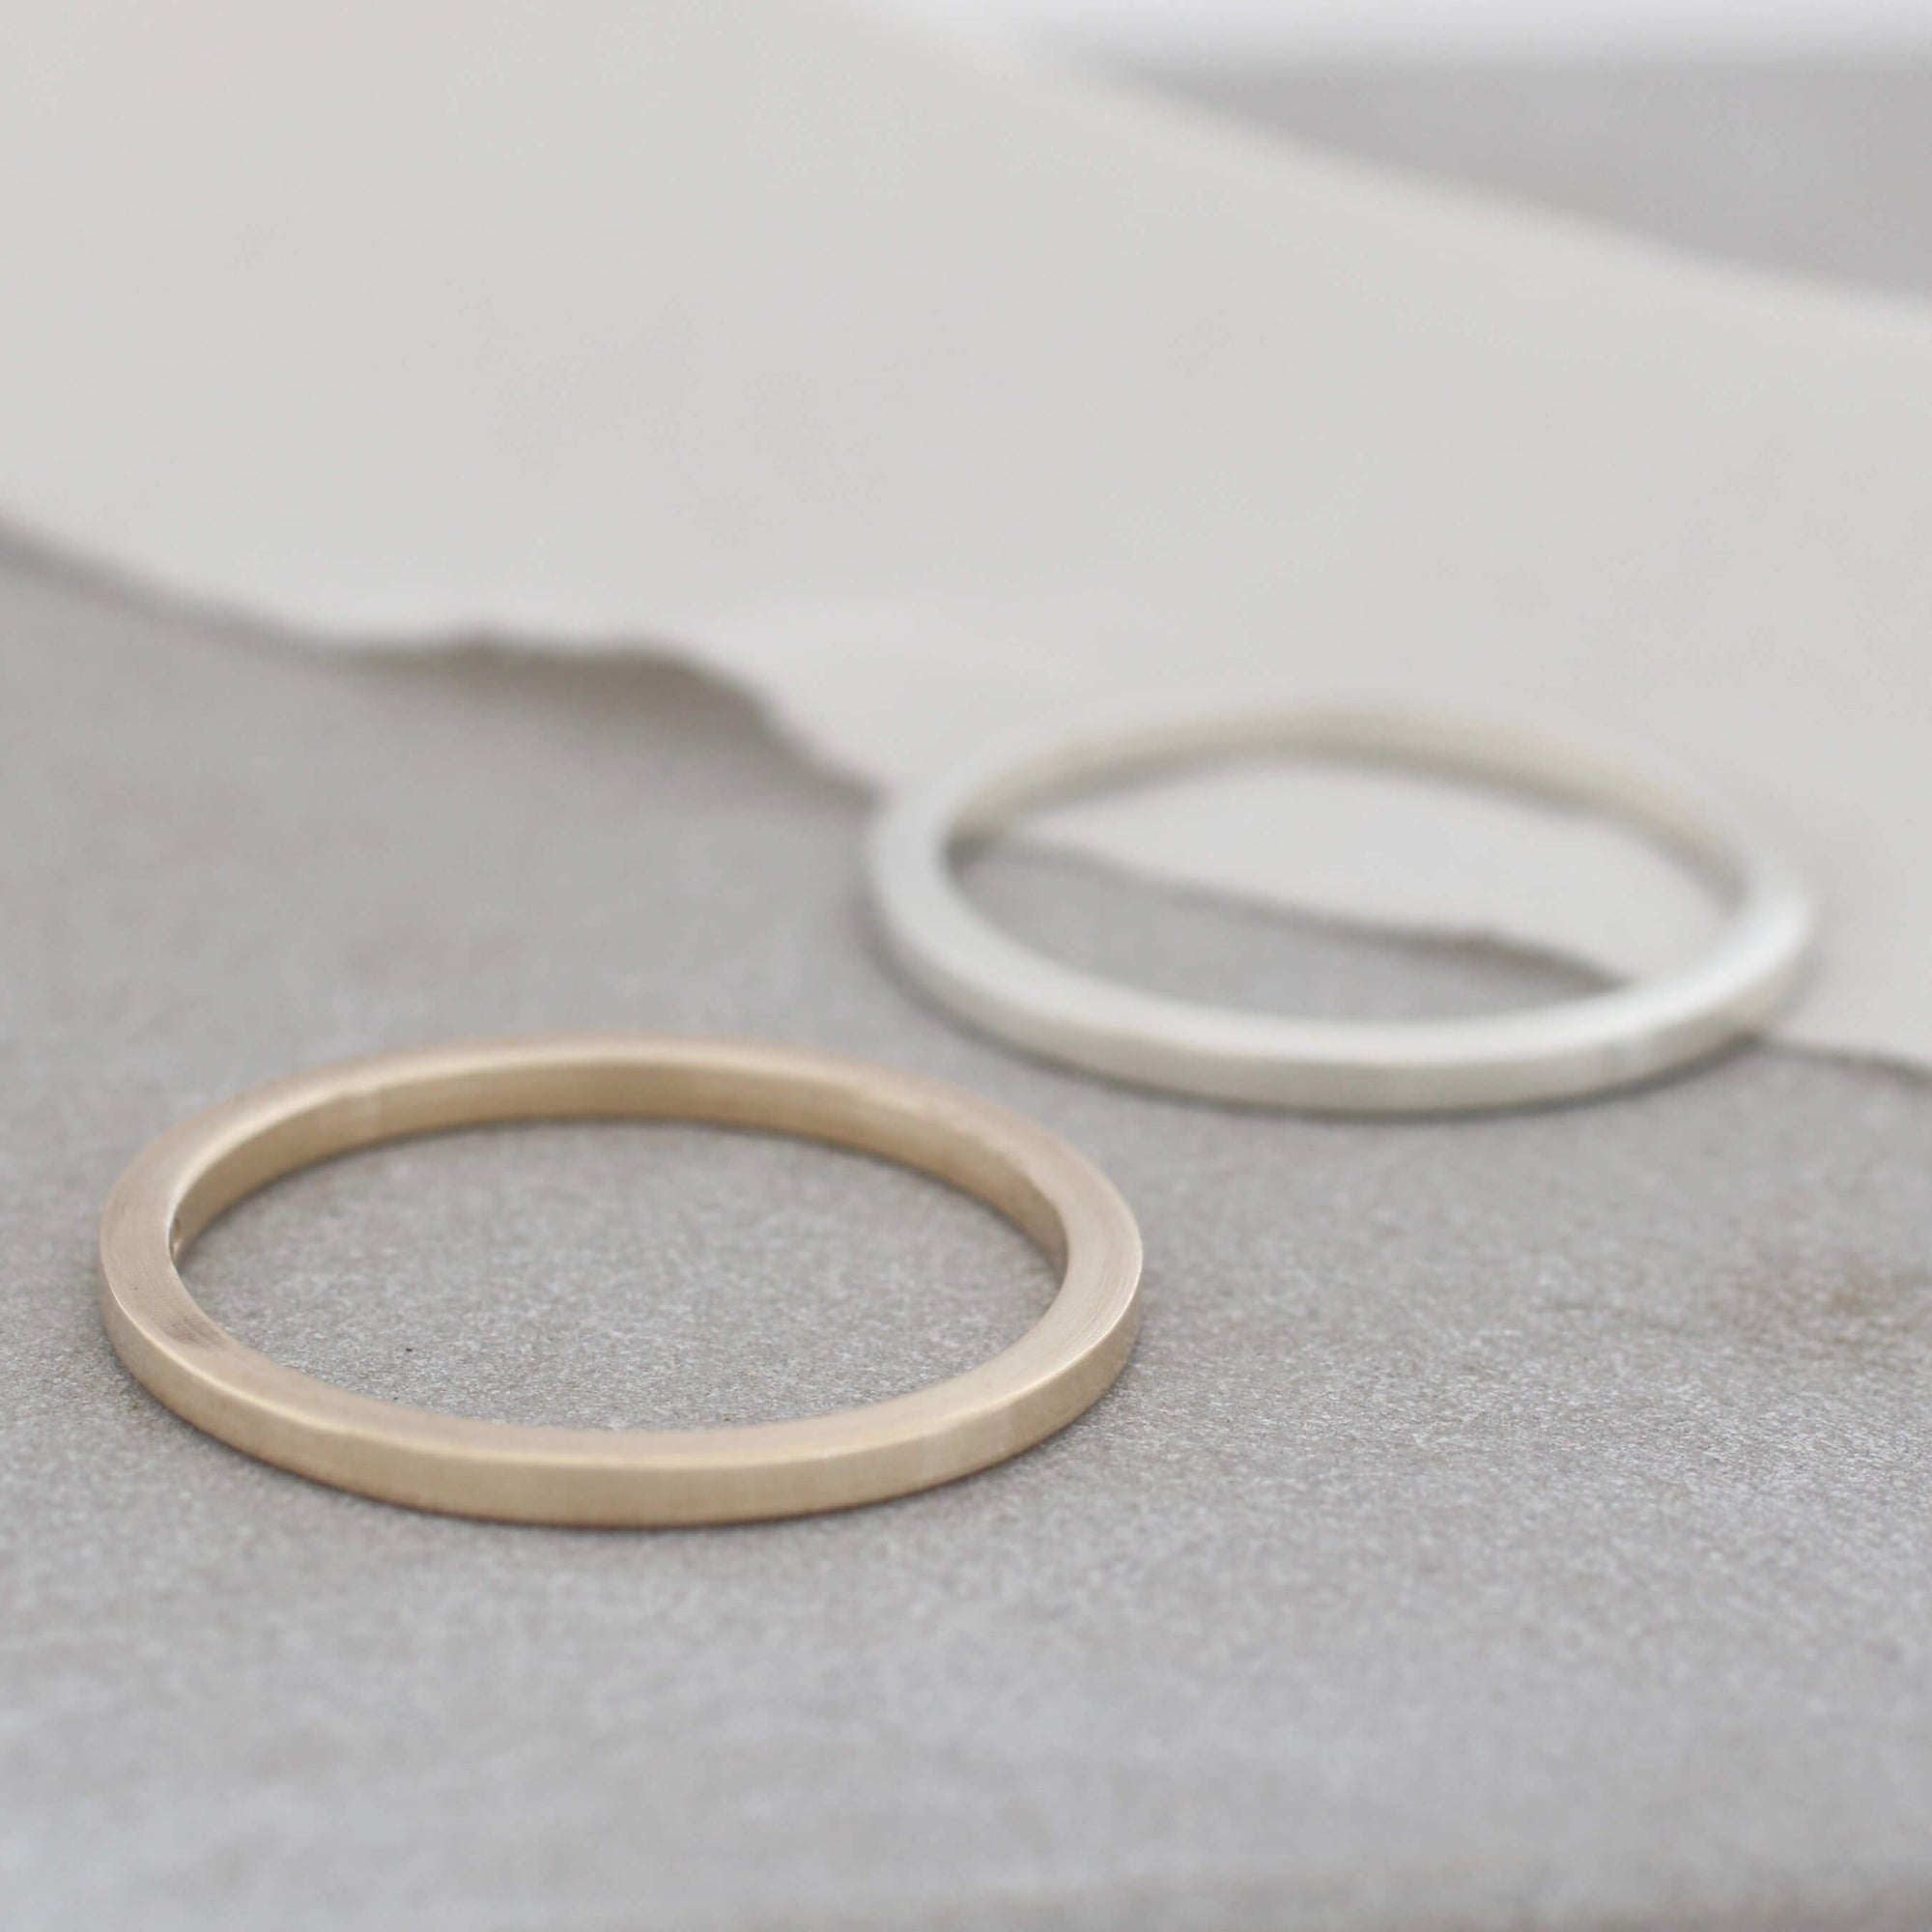 Plain Band Rings. 9ct Gold Stackable Ring